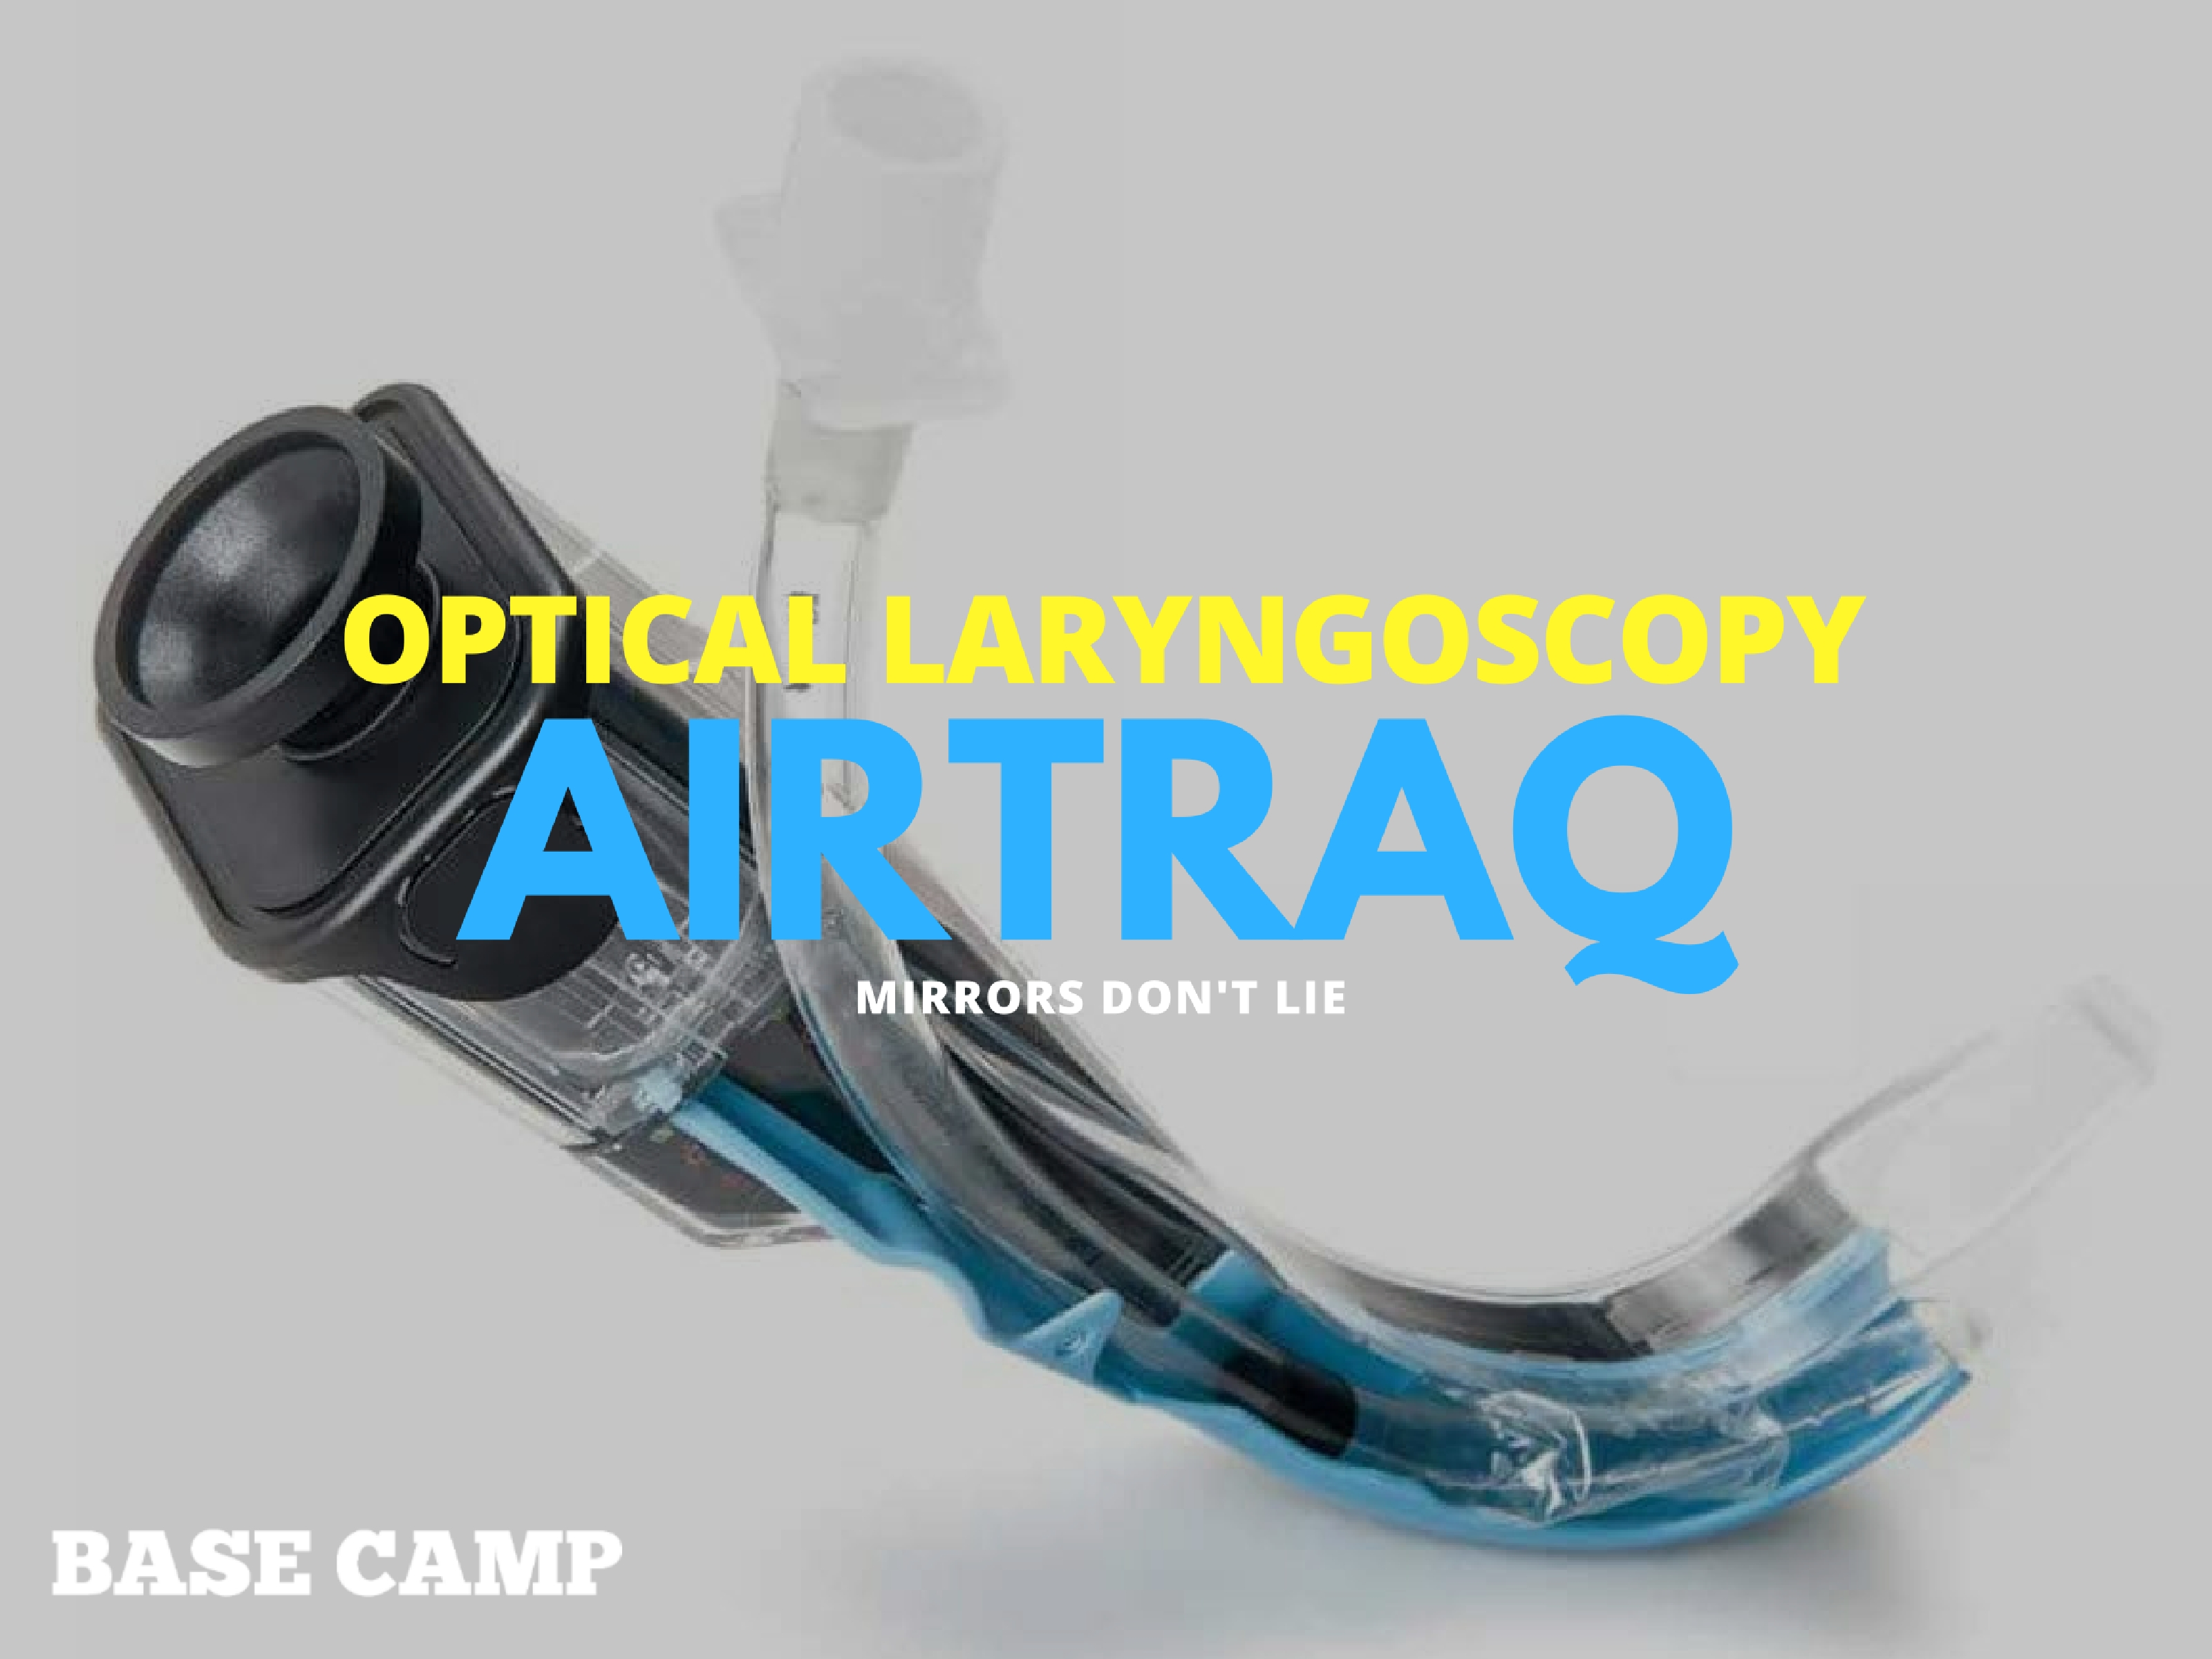 AirTraq Optical Laryngoscopy